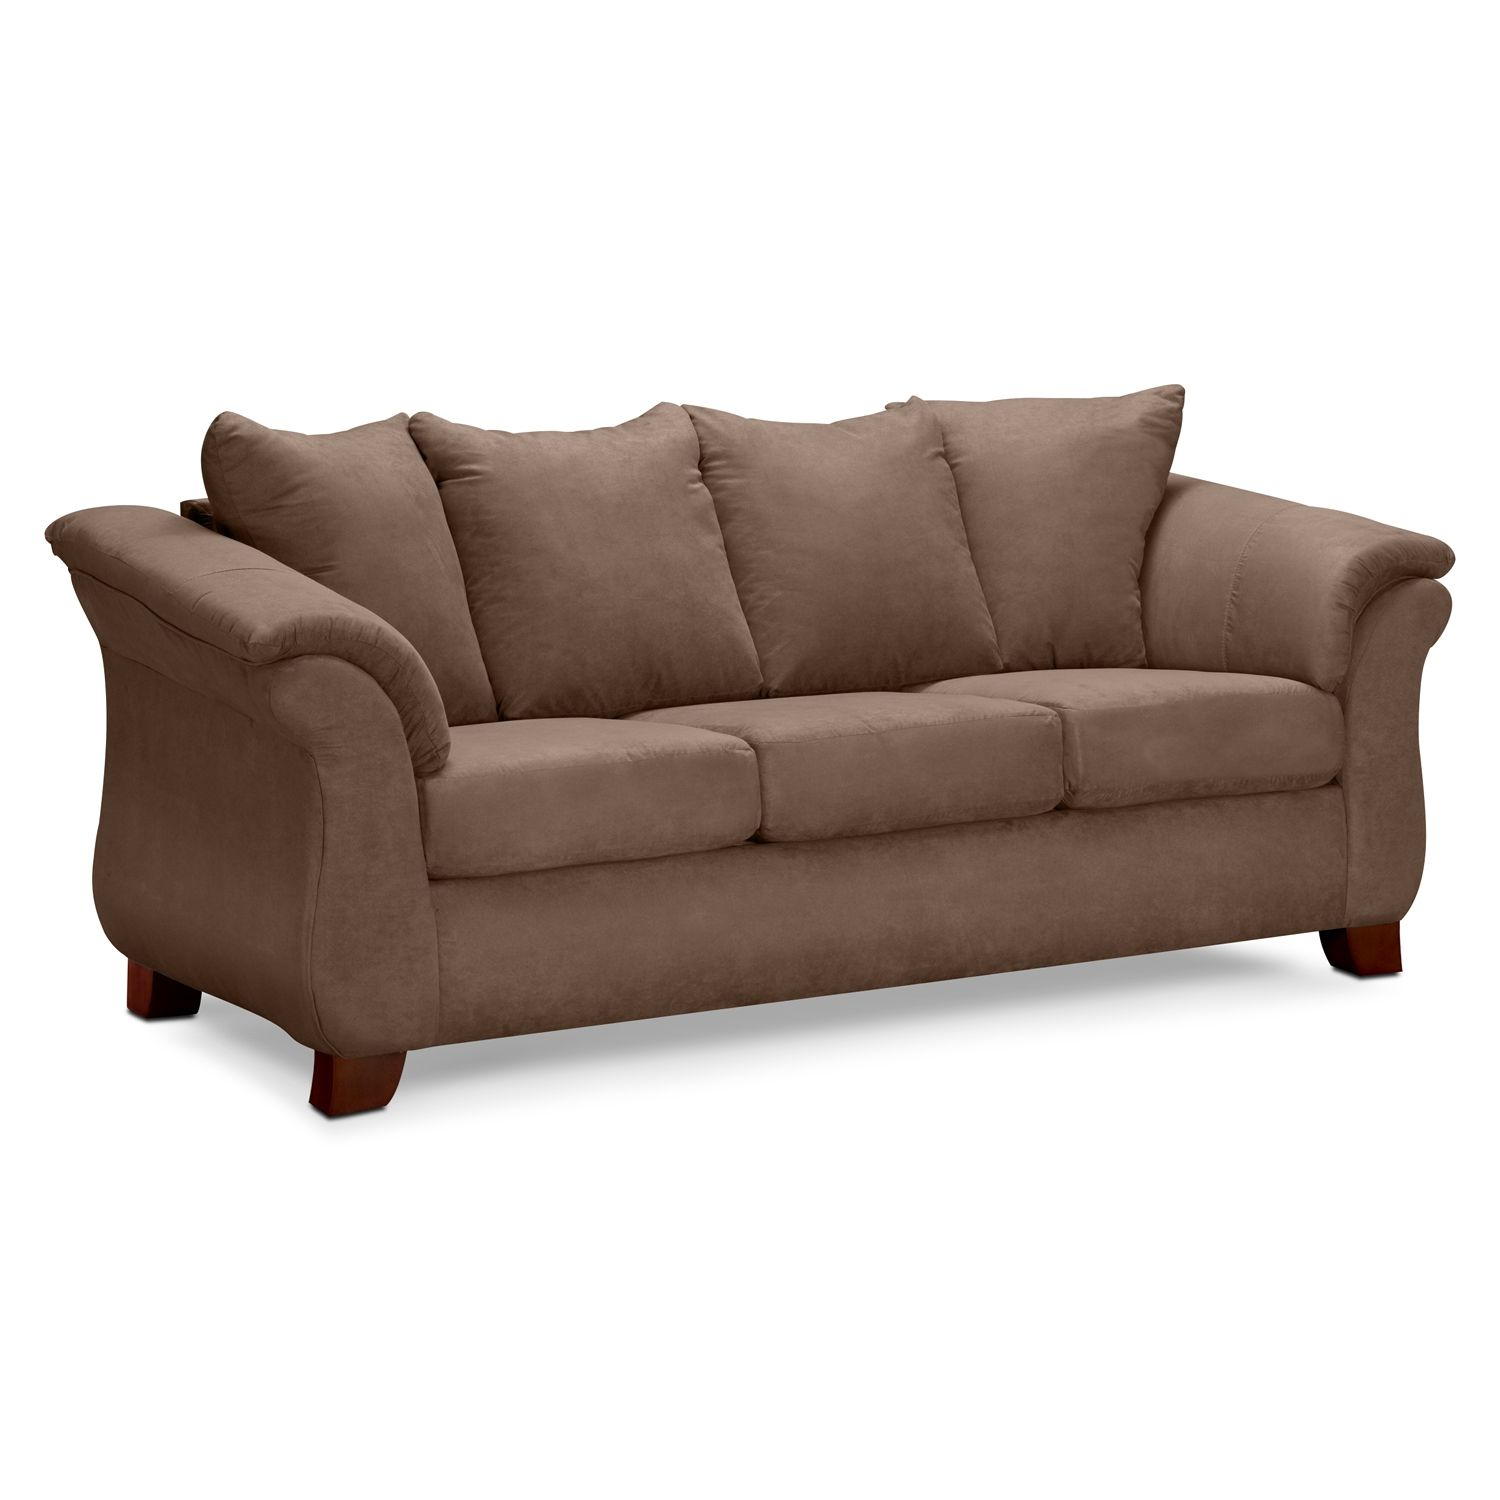 Brown Couch For Brown Red Color Scheme Sunroom Pinterest